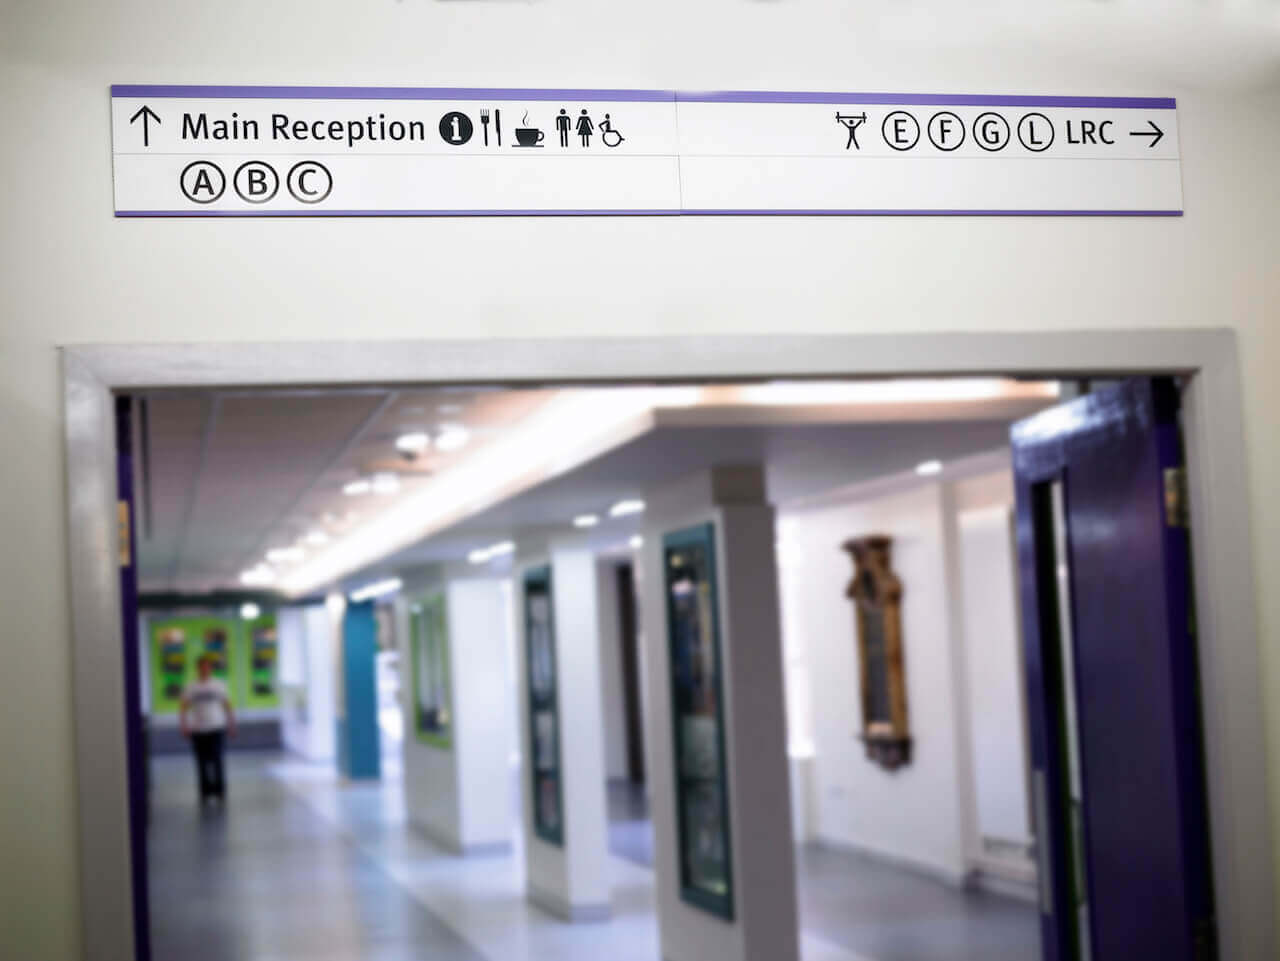 Design-led wayfinding at South Tyneside College helps people navigate the college's vast and complex site